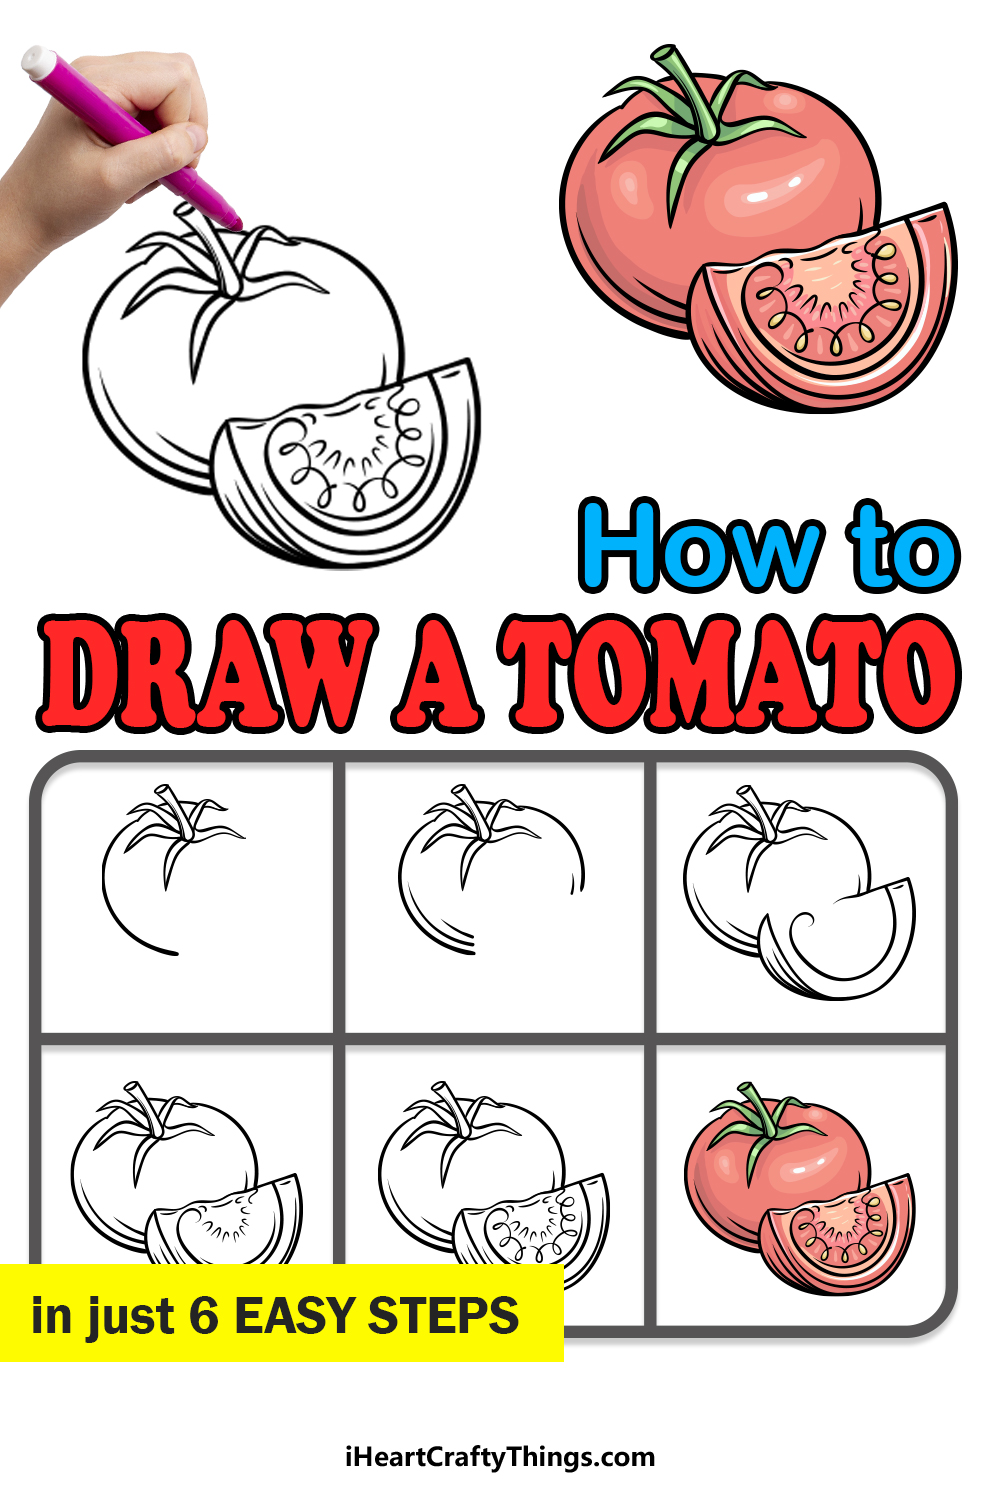 how to draw a tomato in 6 easy steps